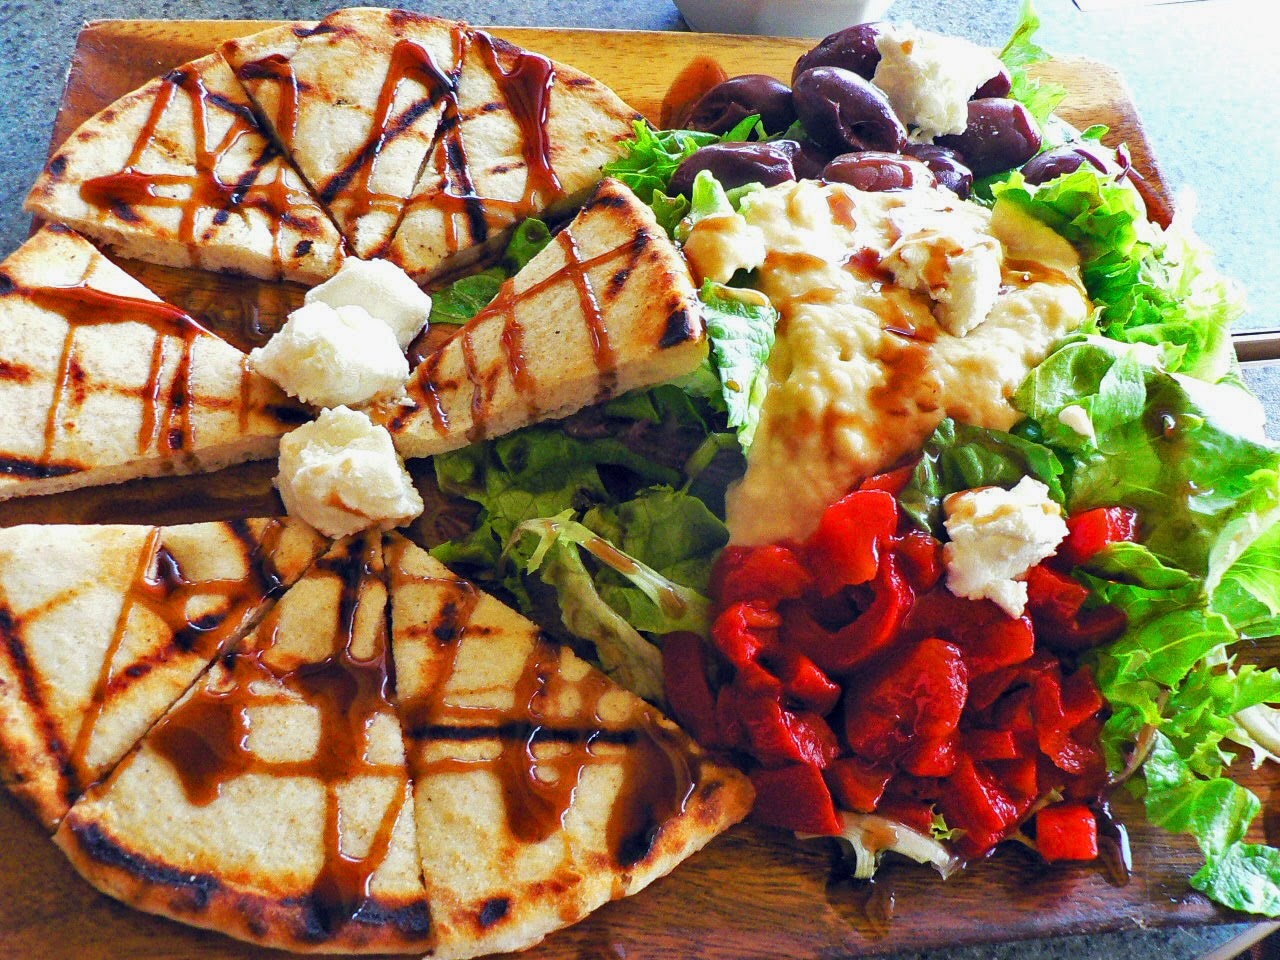 http://www.greecewanderer.com/greek-food-and-what-they-mean/